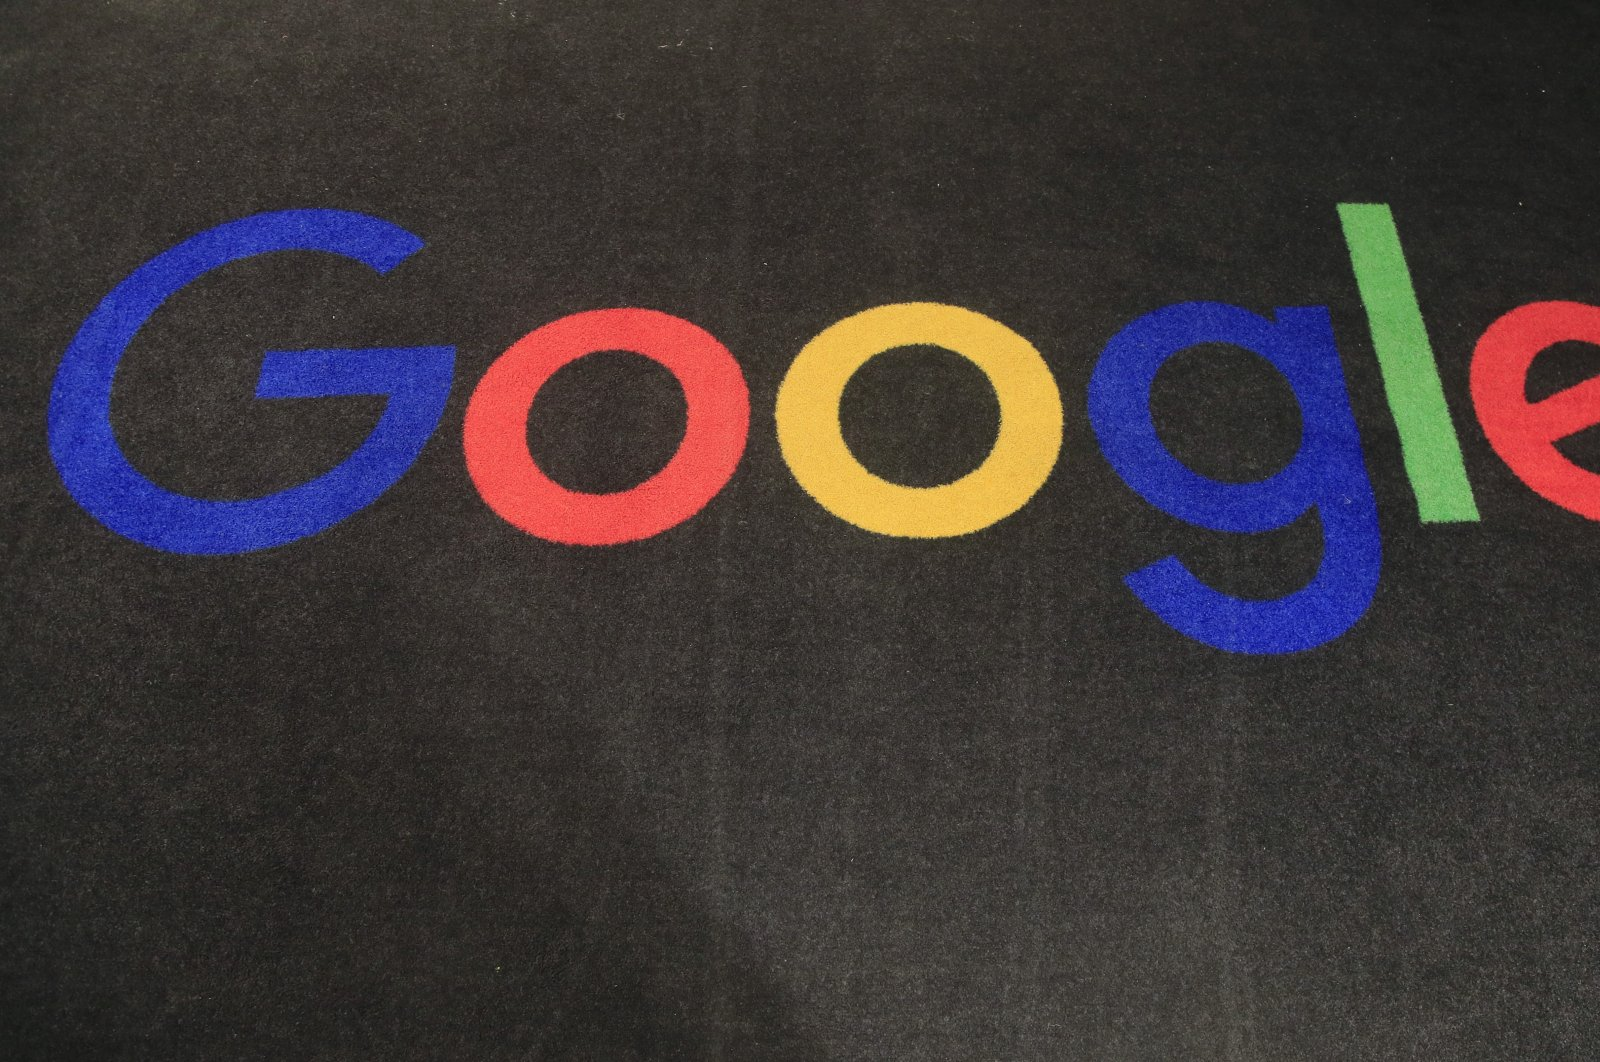 The logo of Google is displayed on a carpet at the entrance hall of Google France in Paris, France, Nov. 18, 2019. (AP Photo)